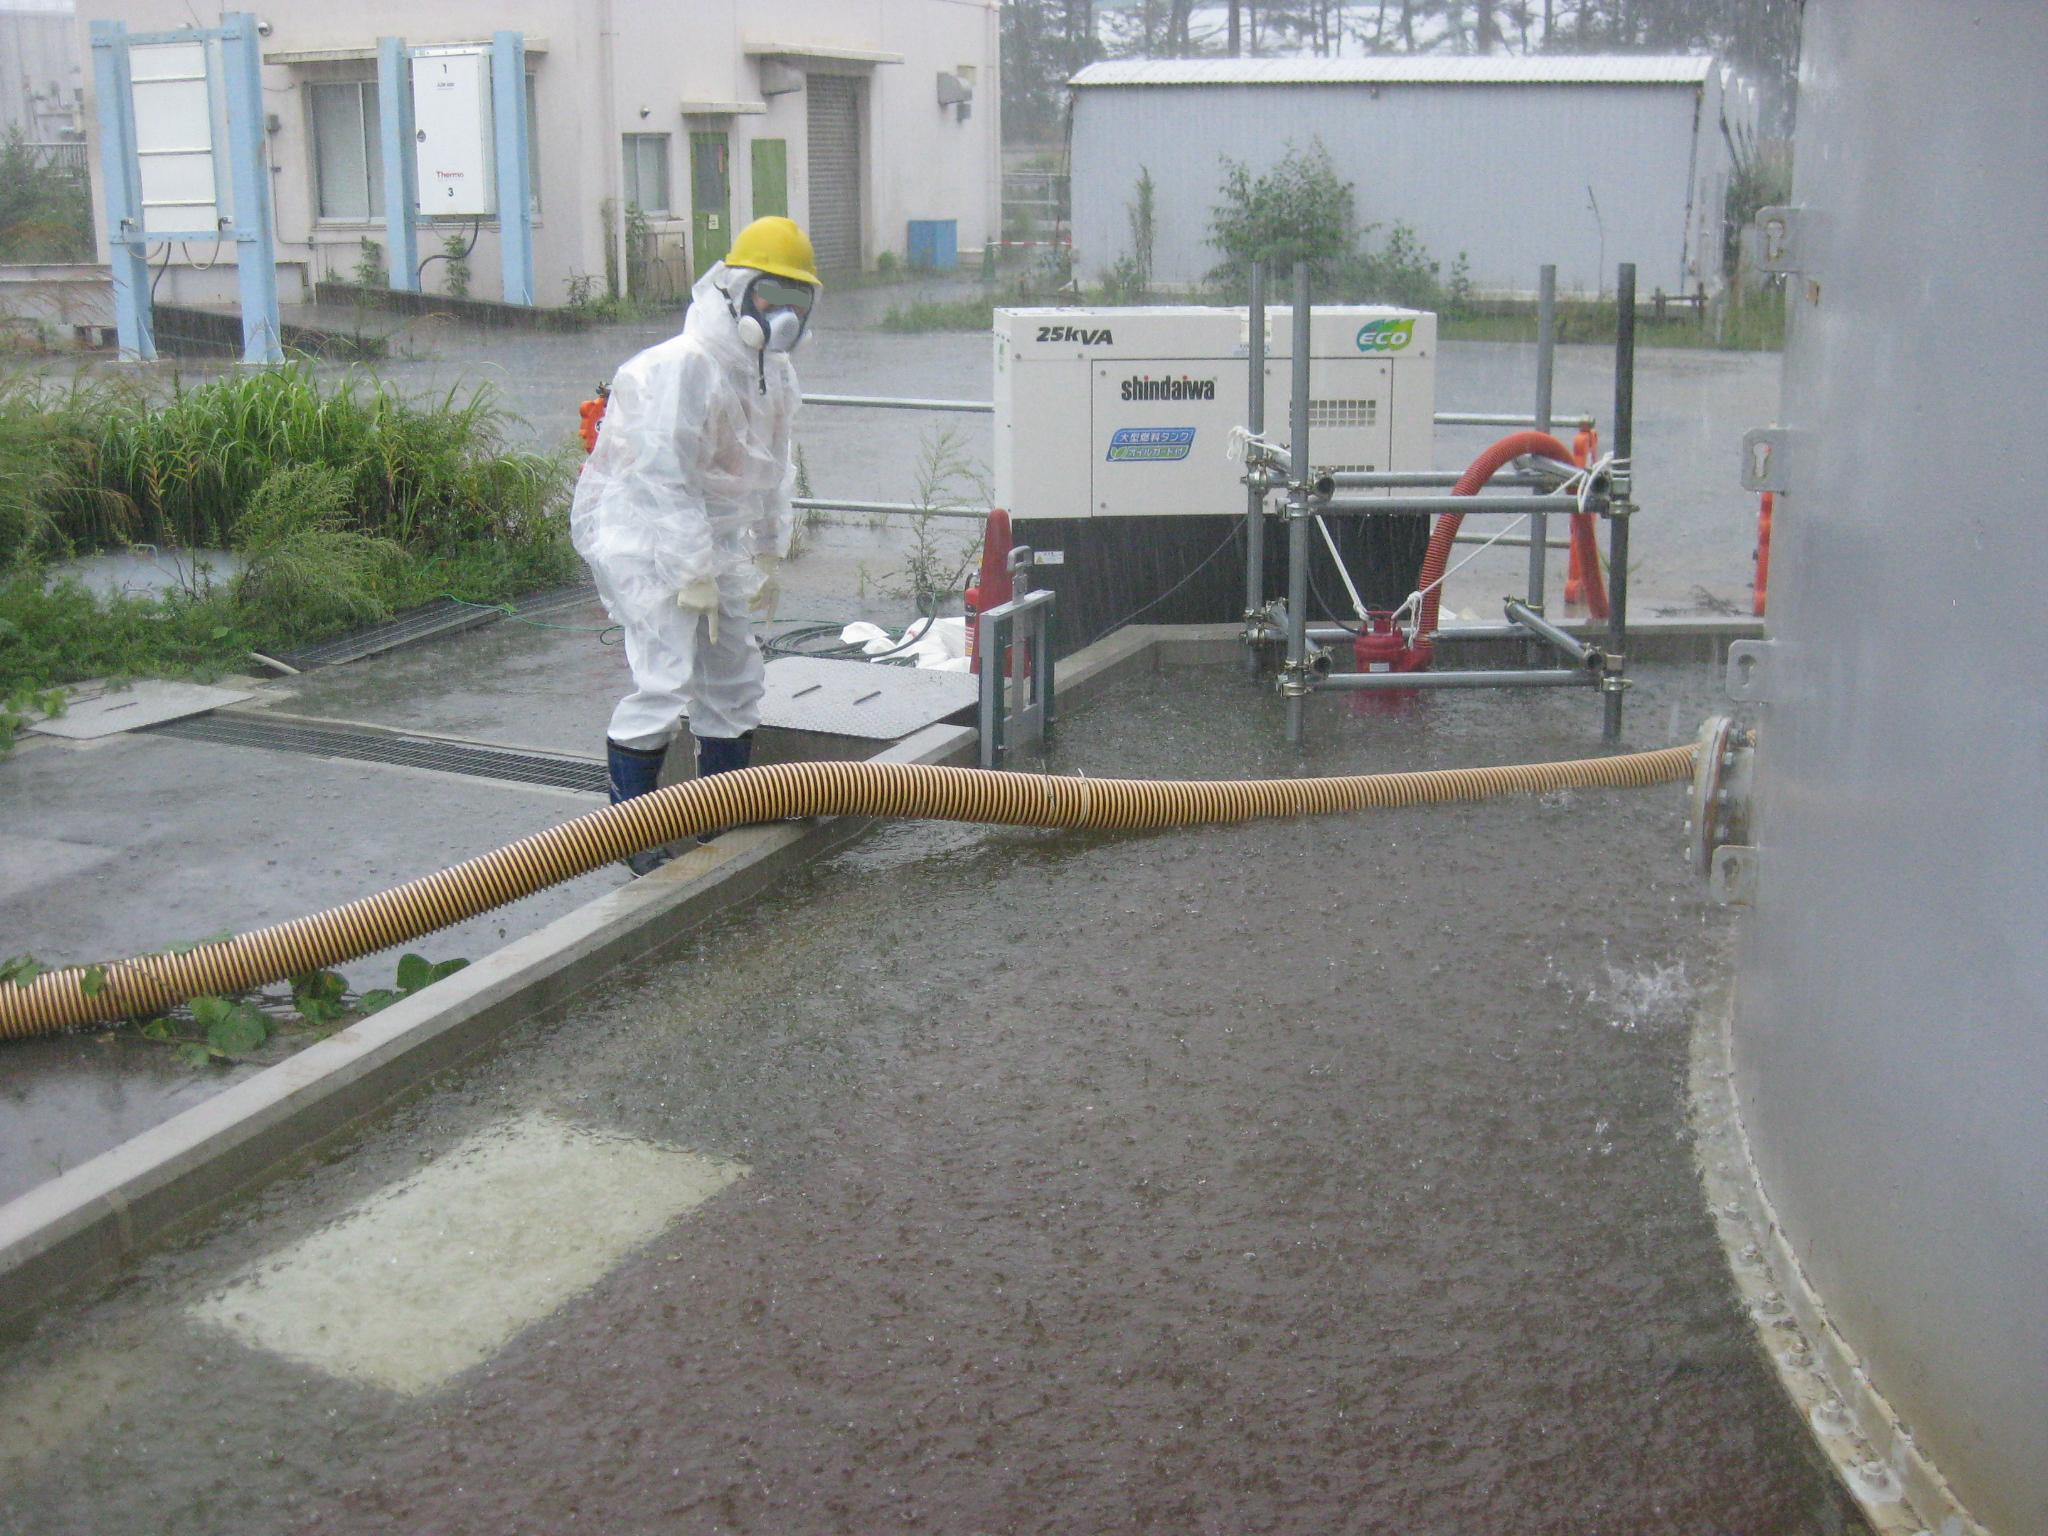 On Sunday and Monday, a severe tropical storm swept over Japan and heavy rains were experienced at the Fukushima Daiichi site, which led Tokyo Electric workers to release more than 1,100 tons of contaminated rainwater, which contained some 25 becquerels per liter of radiation, onto the surrounding area to prevent more-contaminated water from leaking.